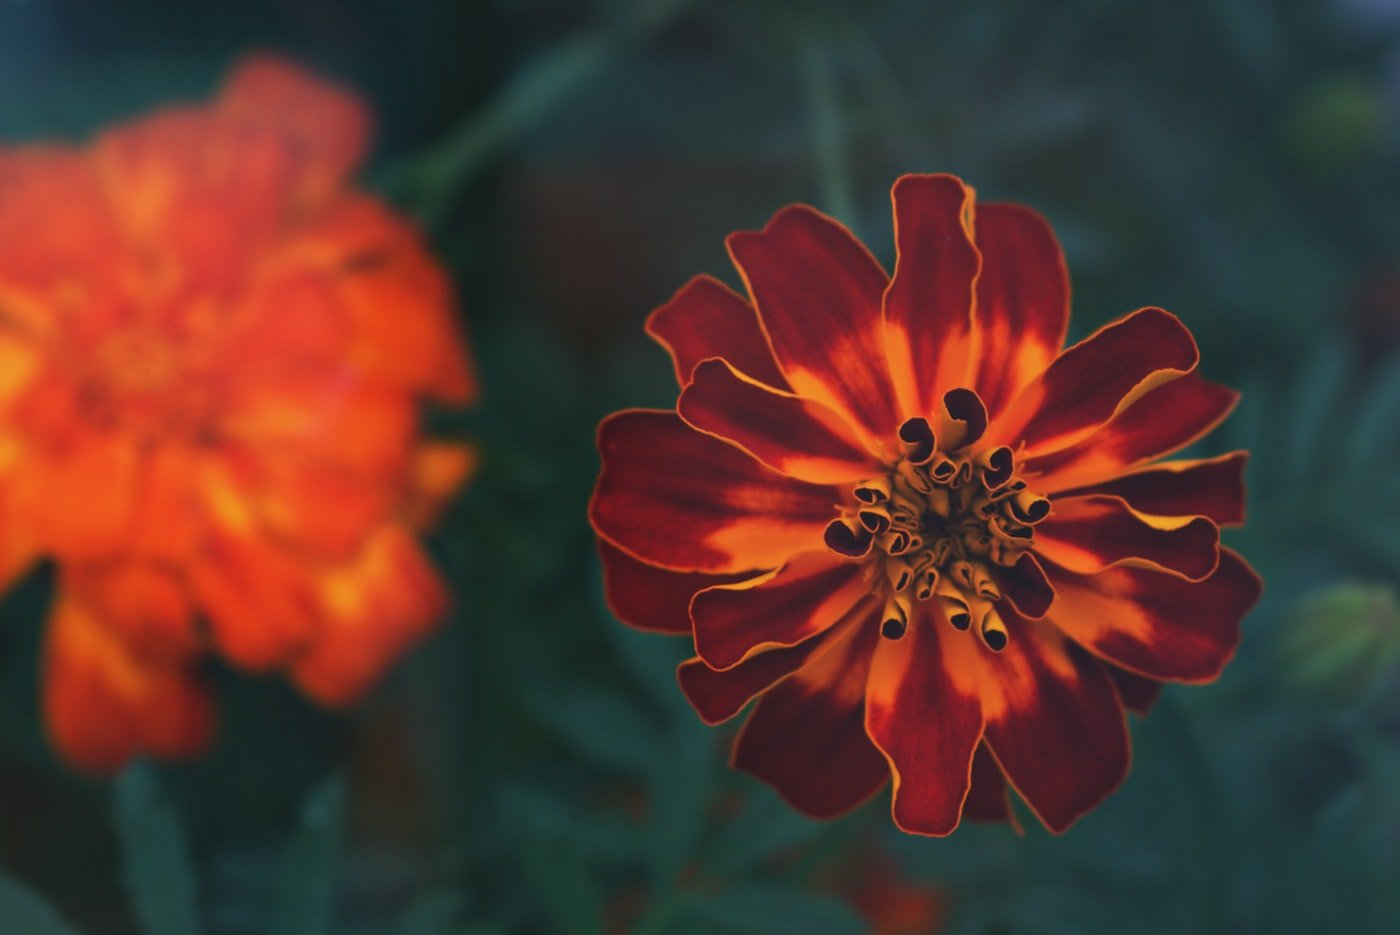 close-up of marigold - we reminisce about summer flowers